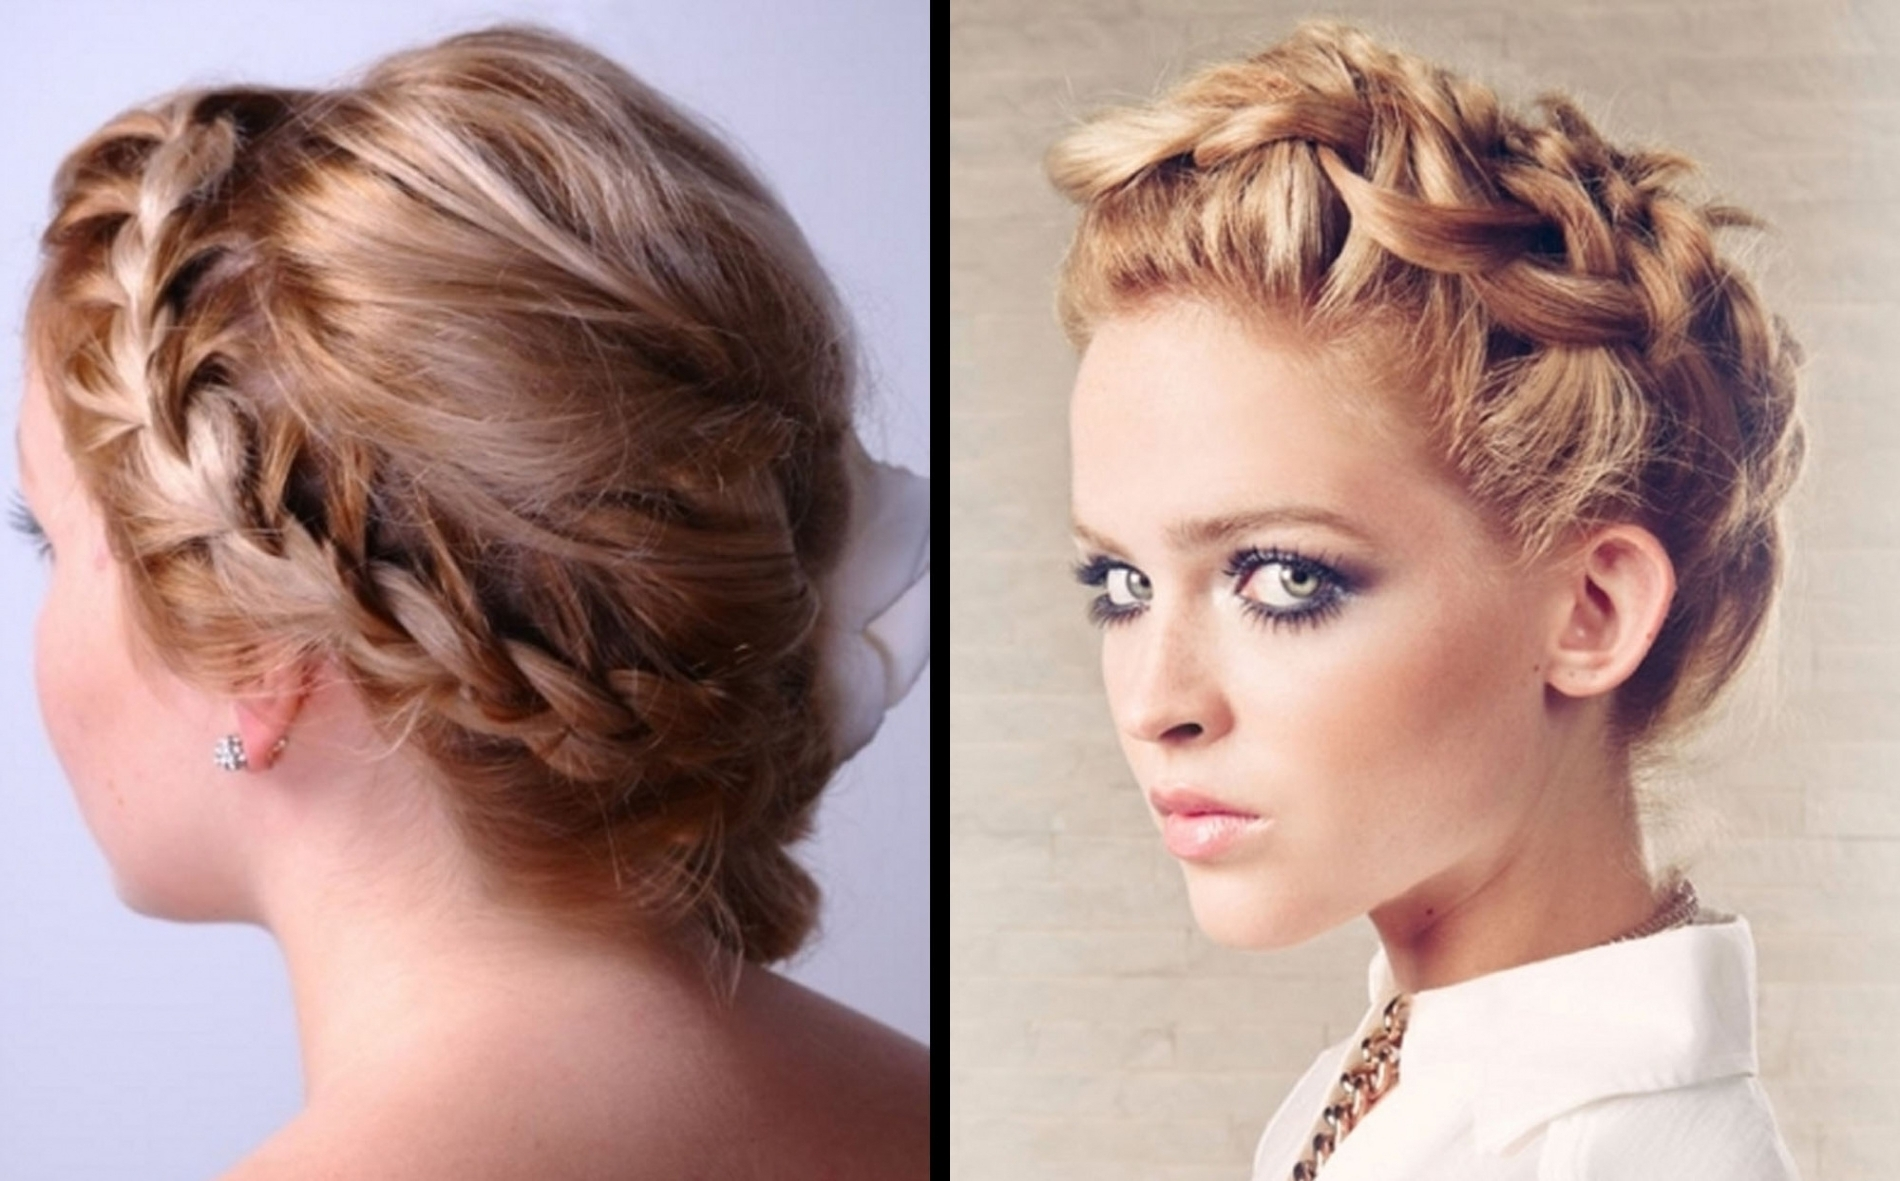 For Short Hair With Braids Cute Easy Updos For Short Hair A She With Cute Short Hair Updos (View 11 of 15)